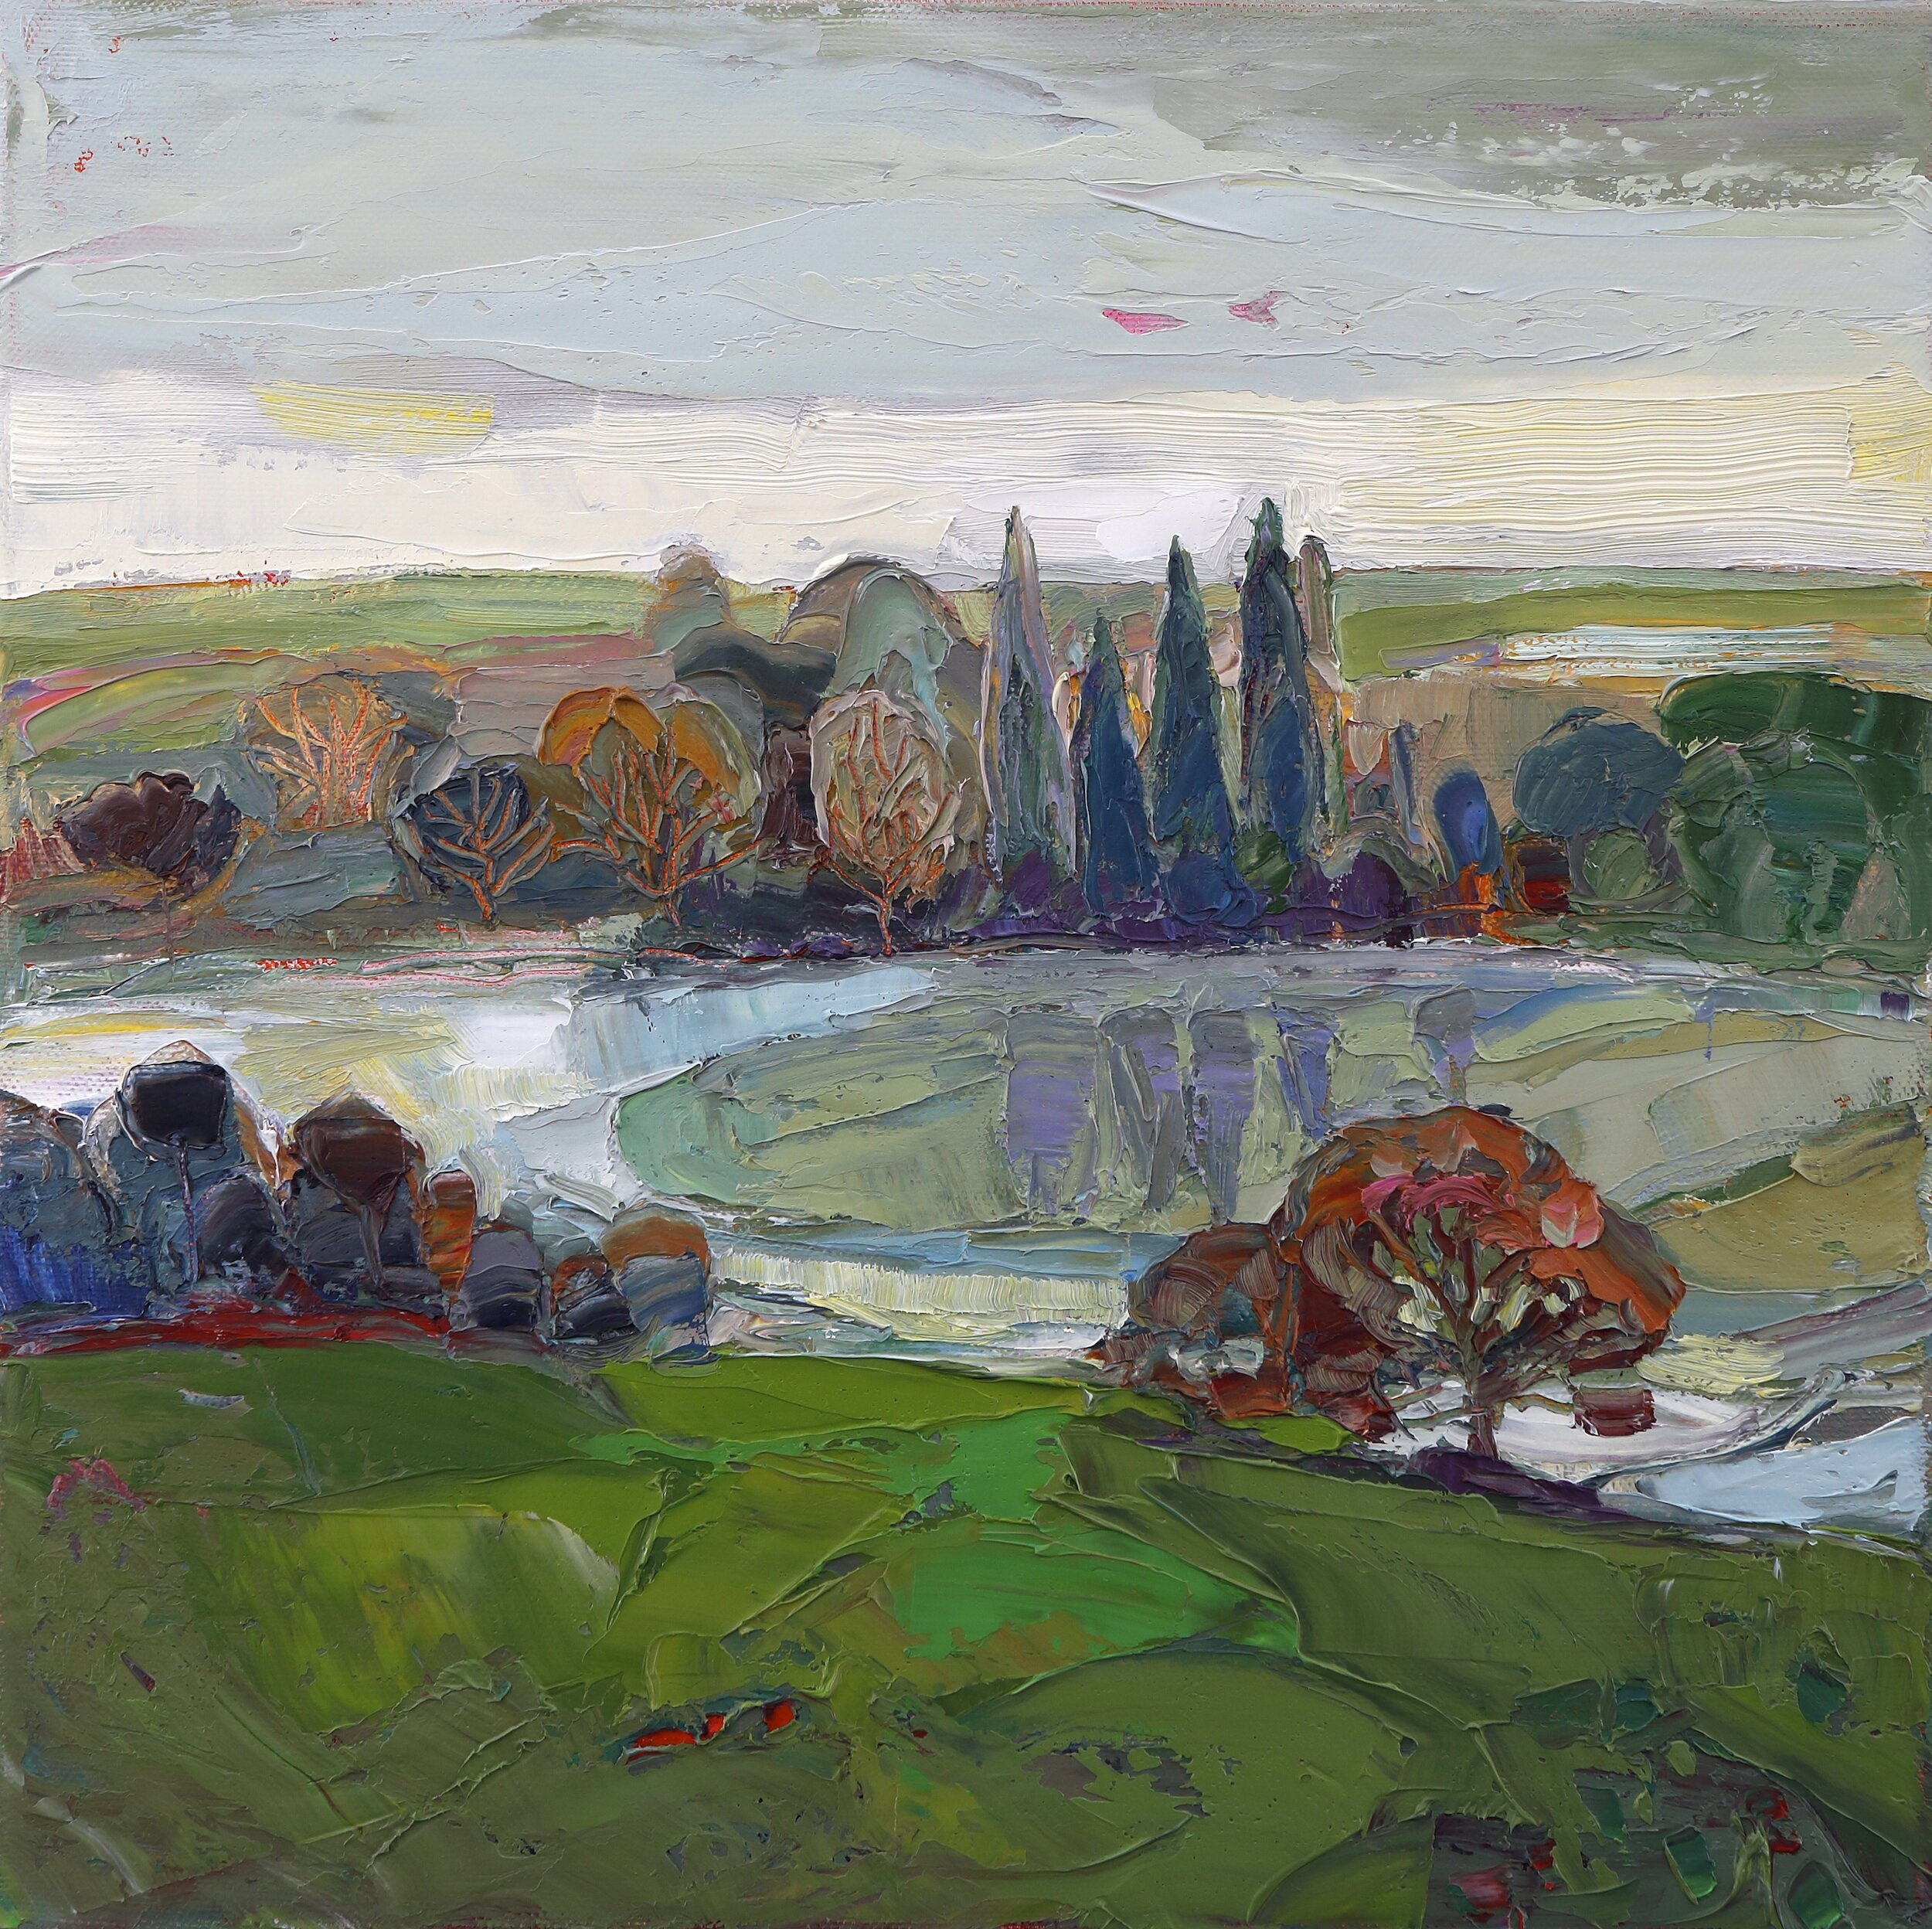 Title: The River Runs  Size: 12x12in  Medium: Oil on Canvas  Price: £1750